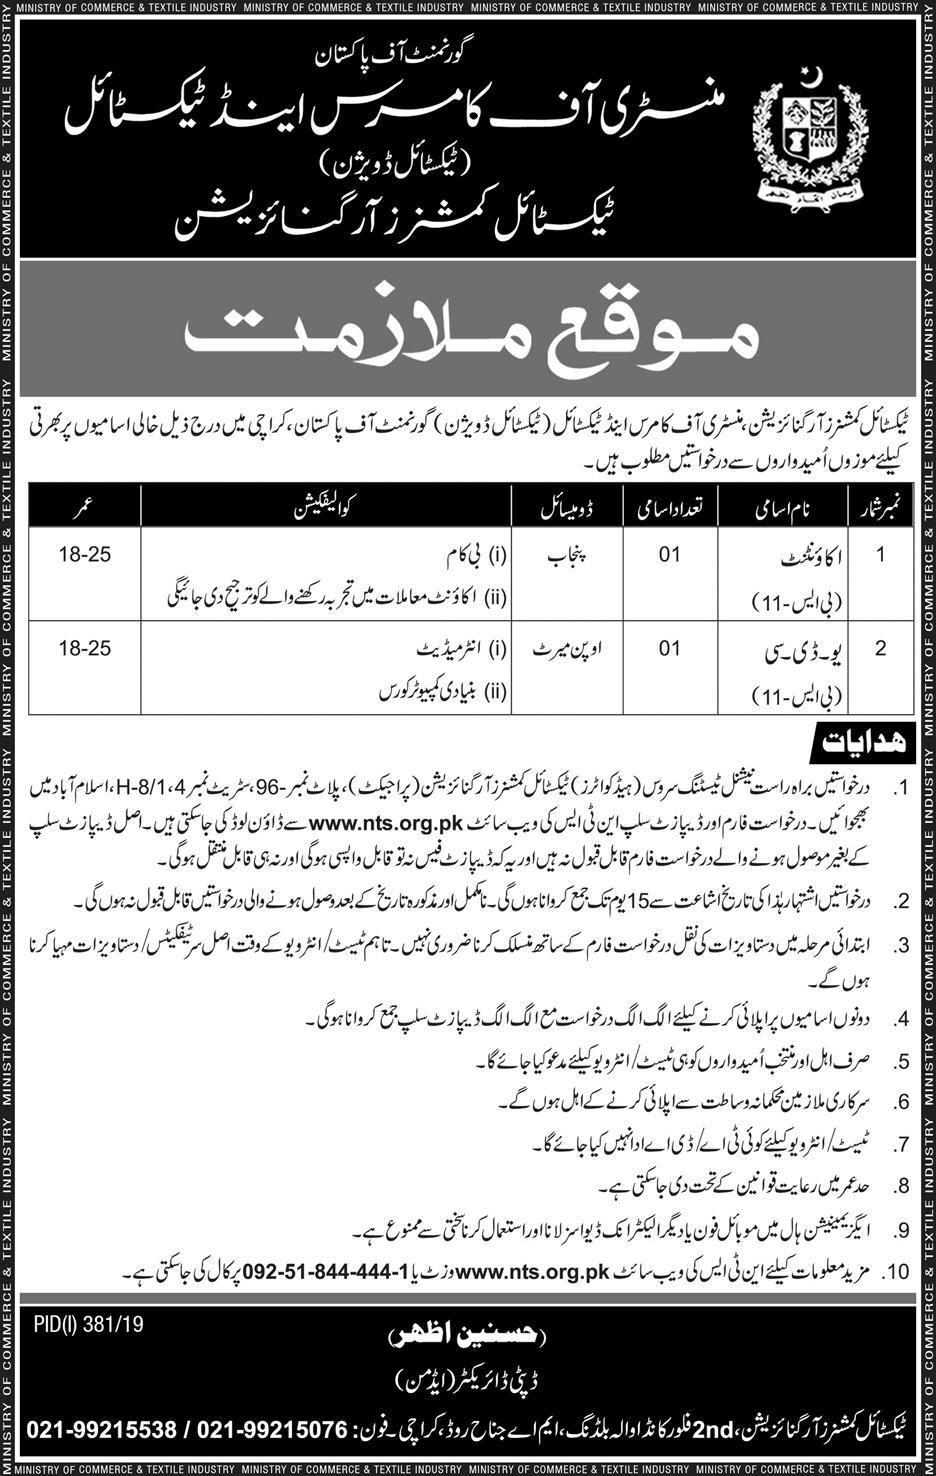 Ministry of Commerce Textile MOCT Jobs Via NTS